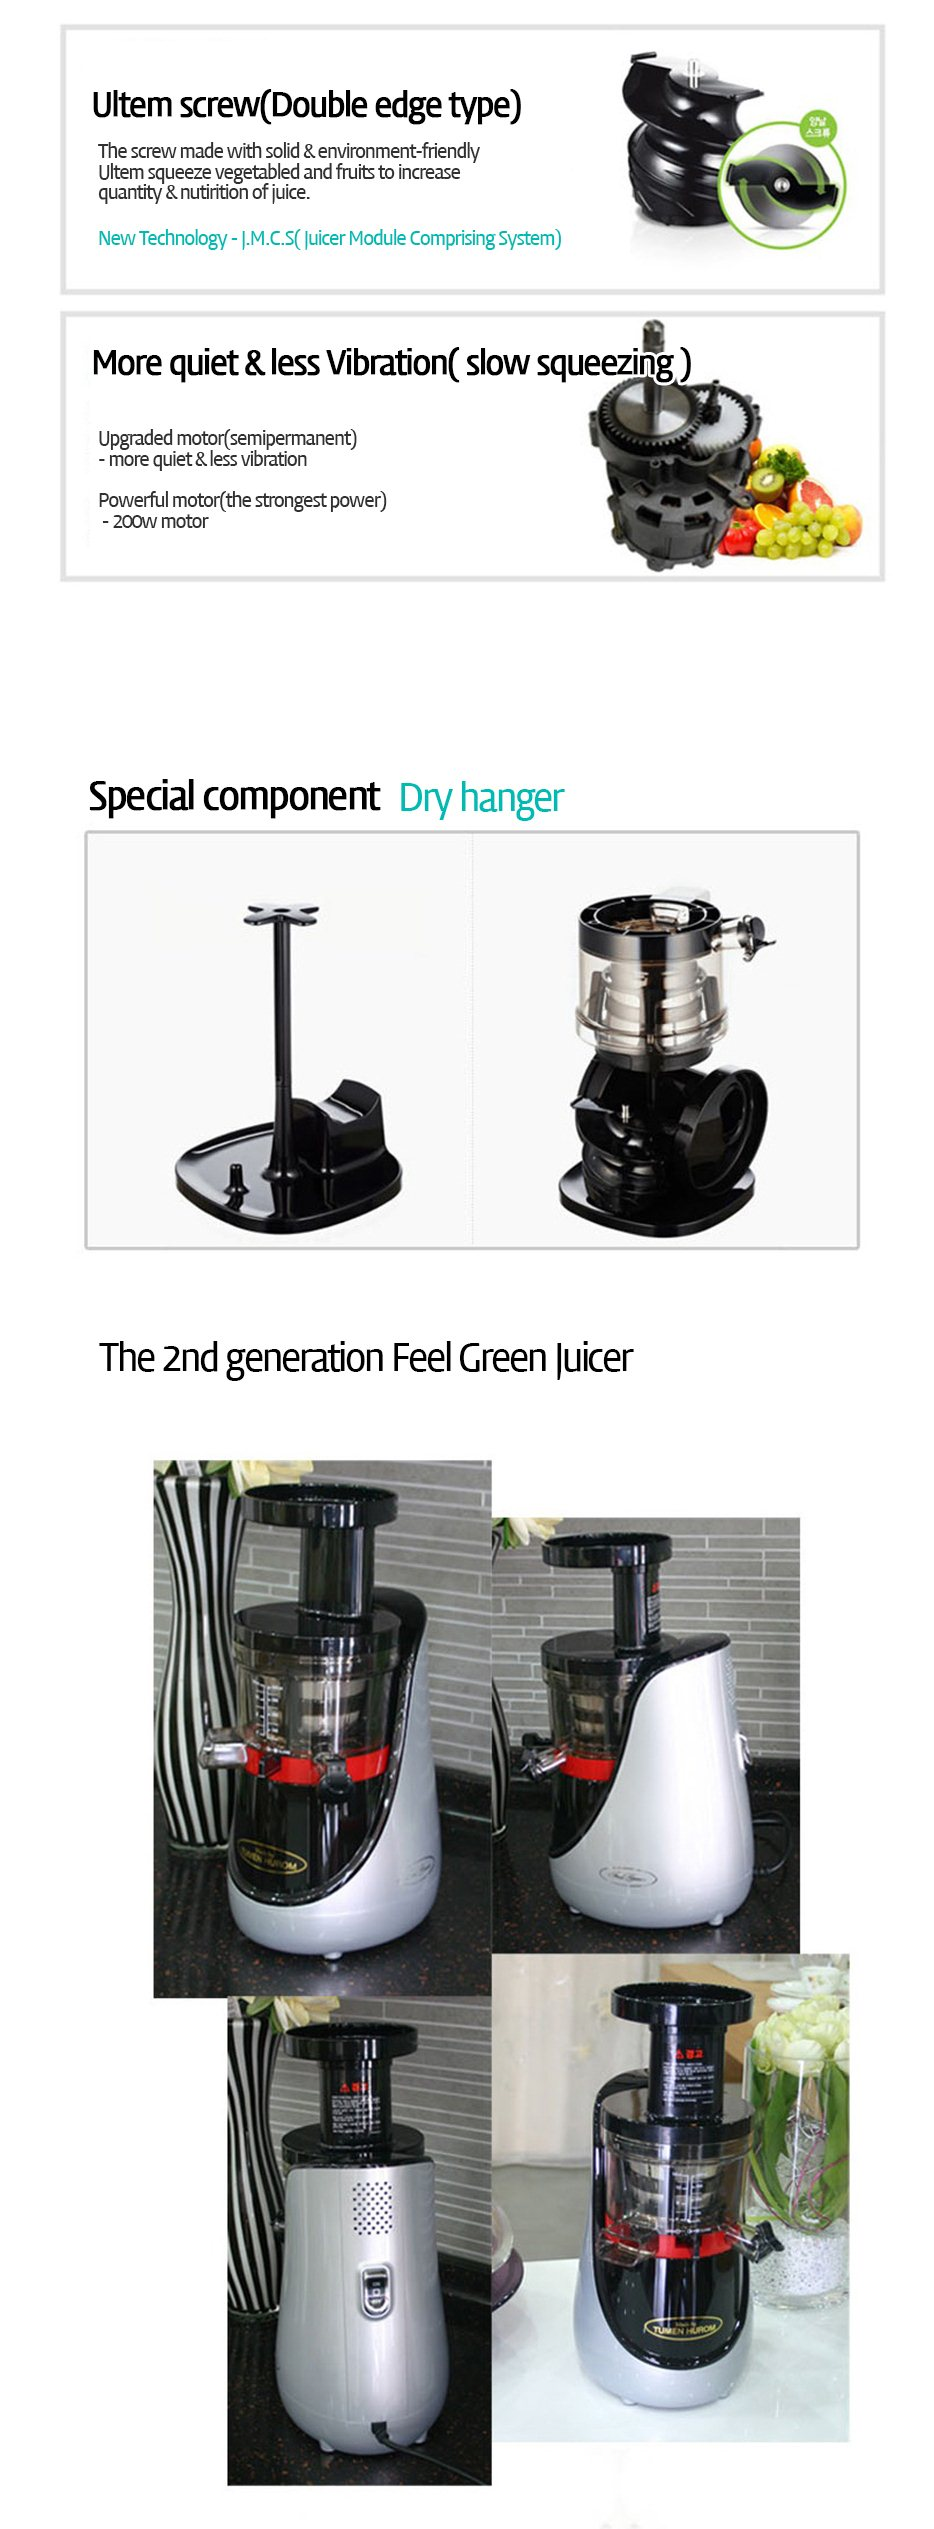 Nuc Slow Juicer Manual : Buy [HUROM]2014 HH-SBF11 2ND Generation Hurom Juicer Slow Juicer HD-BBF09/HD-RBF09 Deals for ...